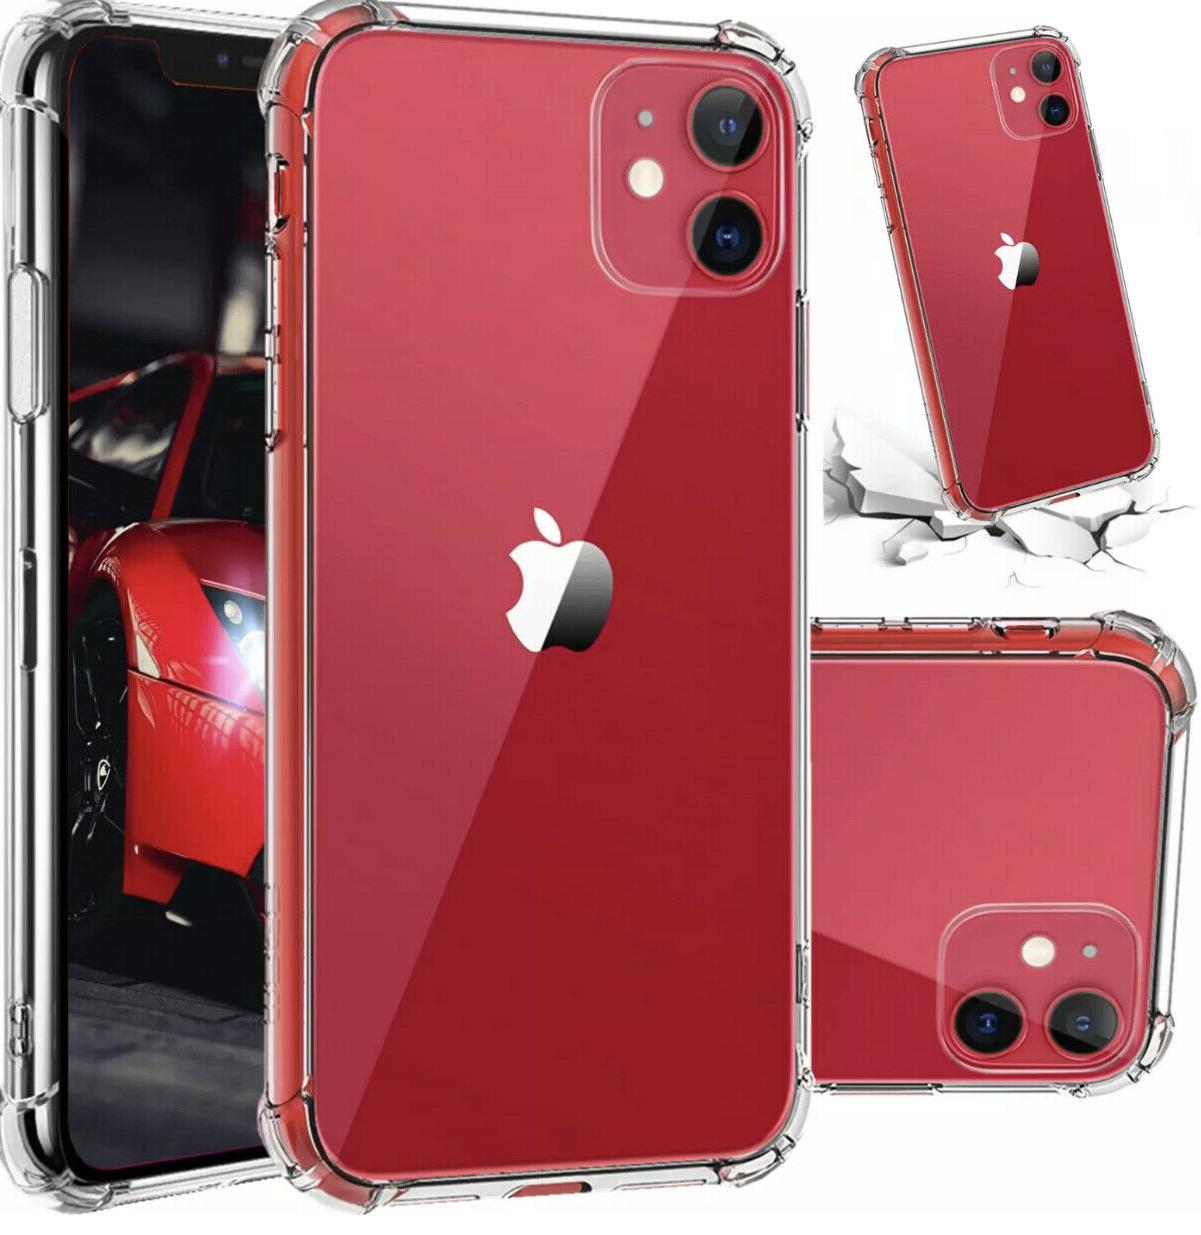 For Case 11 Max Xs max Cover